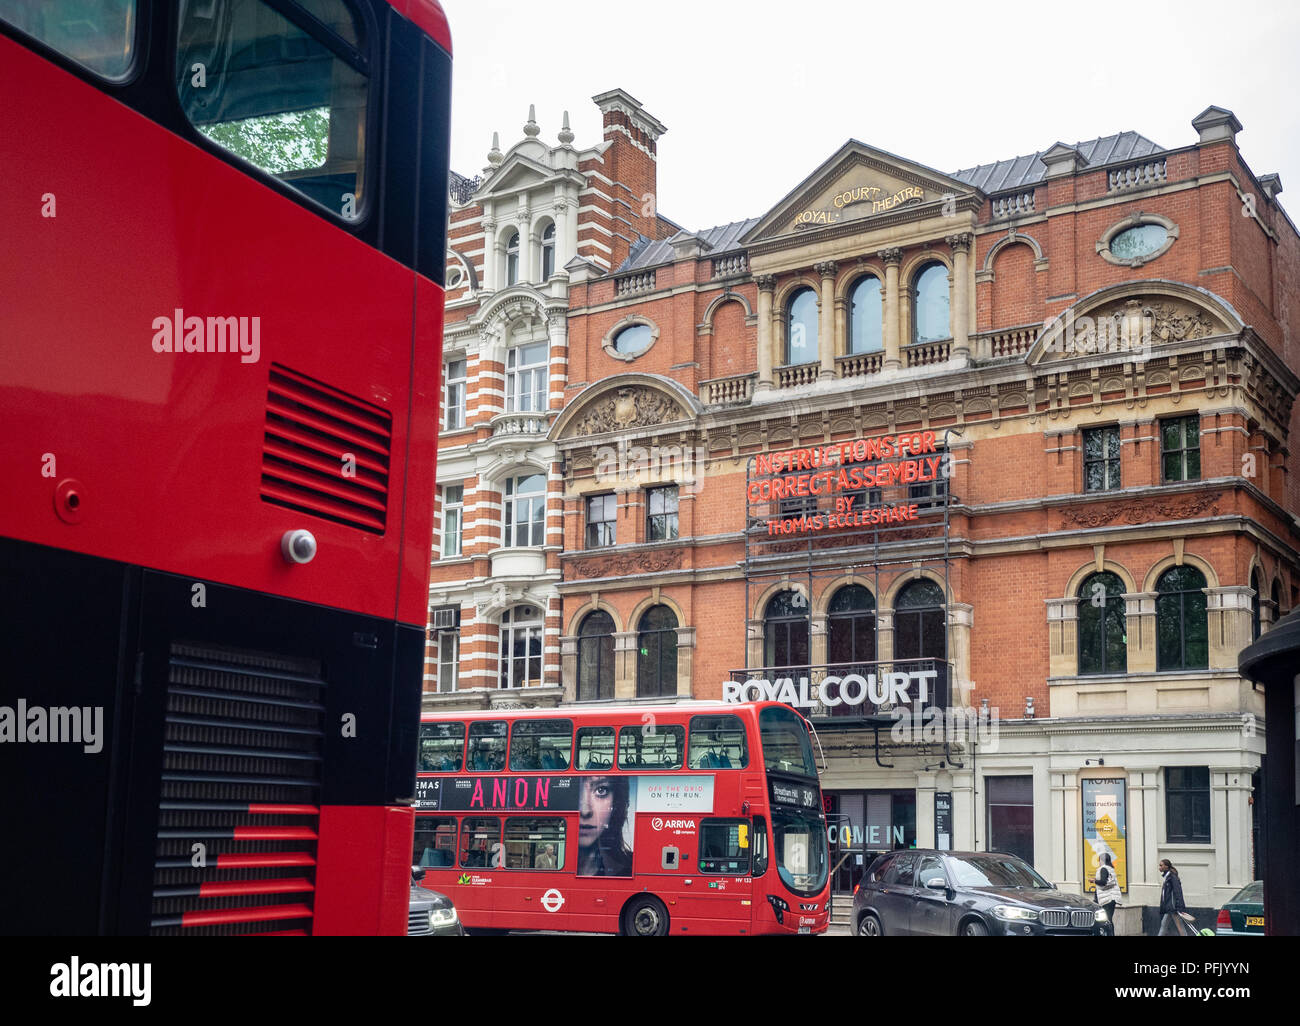 The Royal Court Theatre, Sloane Square, Chelsea, Royal Borough of Kensington and Chelsea, Greater London, England, United Kingdom, - Stock Image